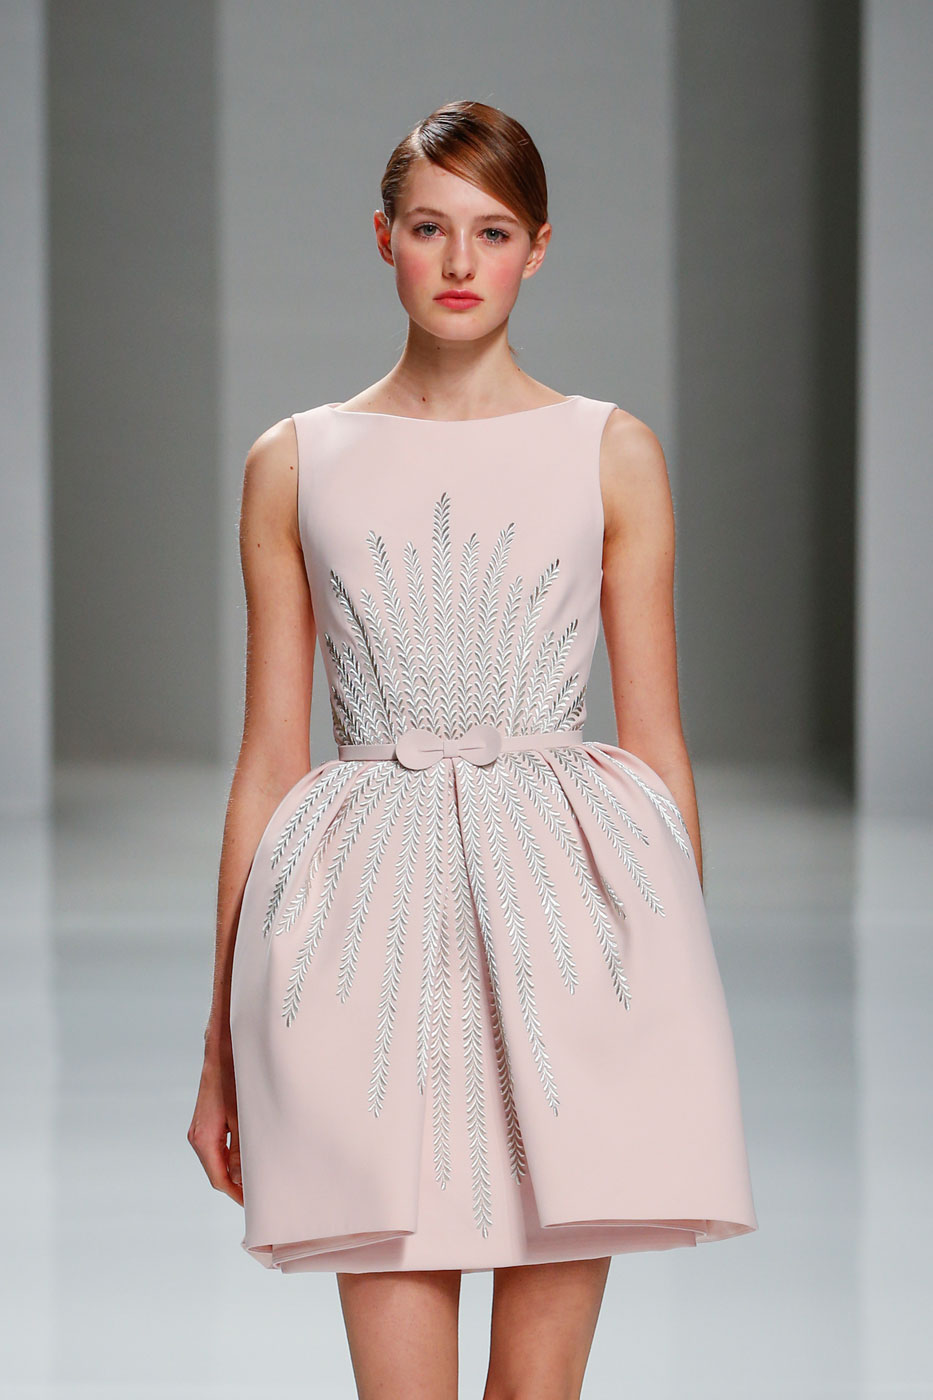 Georges-Hobeika-fashion-runway-show-haute-couture-paris-spring-2015-the-impression-02